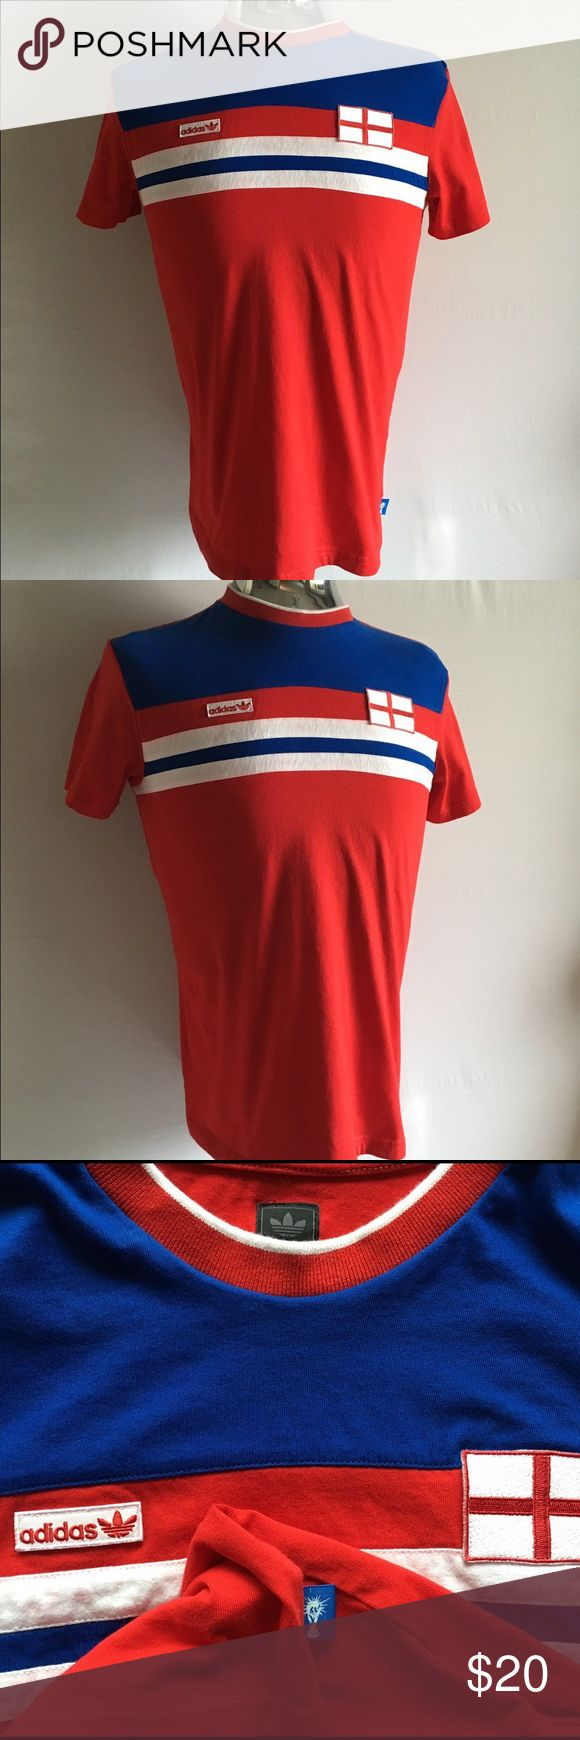 """Adidas Originals England T Shirt Adidas Originals England T Shirt comes in a soft cotton with England patches. Size: S Chest: 40"""" Length: 26 1/2"""" Shoulder to Shoulder: 17"""". In excellent condition. Adidas Shirts Tees - Short Sleeve"""